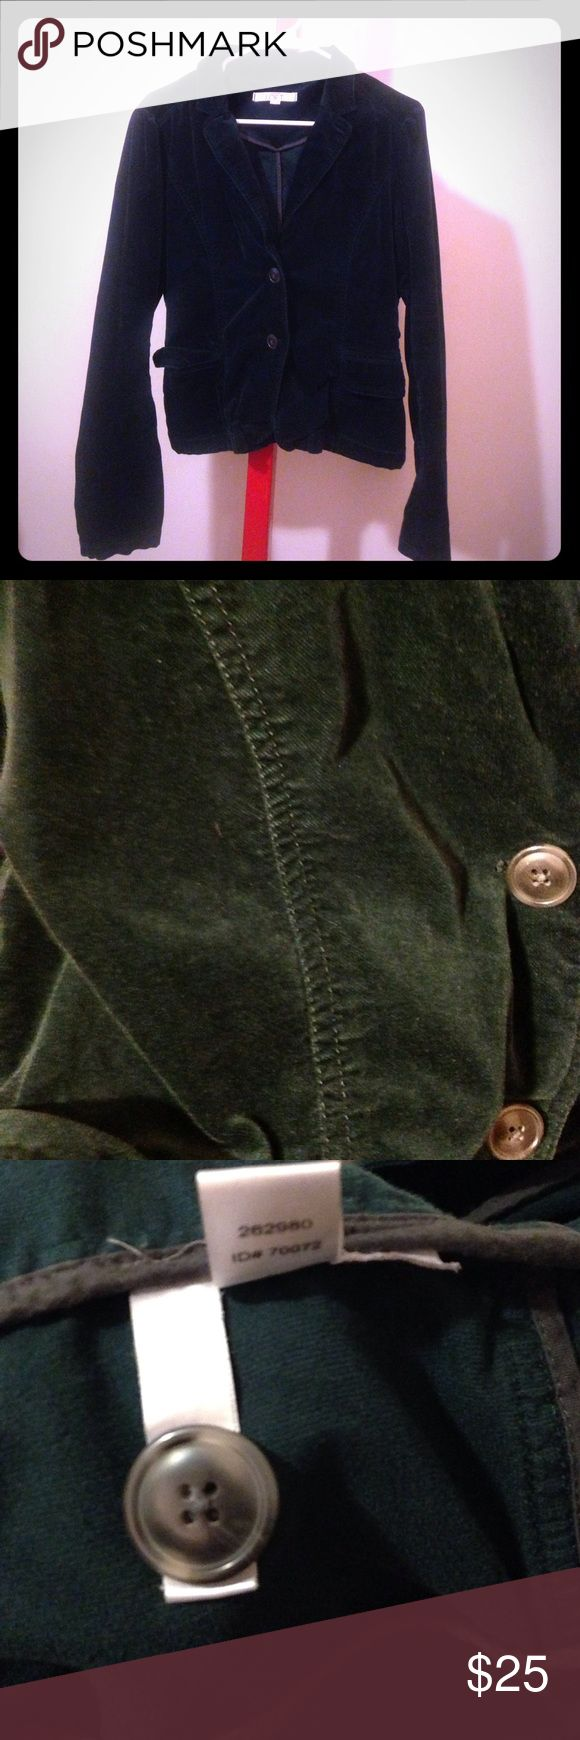 Dark green festive velvet velour blazer jacket Great condition Ann Taylor Loft long-sleeve two-button velour blazer, size 8 (runs a little large I think, I usually wear a 10 or 12). Second photo (closeup) shows the color pretty well, it is a dark green that looks black in low light. Comes with an extra button. Soft and elegant, great for the holidays! LOFT Jackets & Coats Blazers